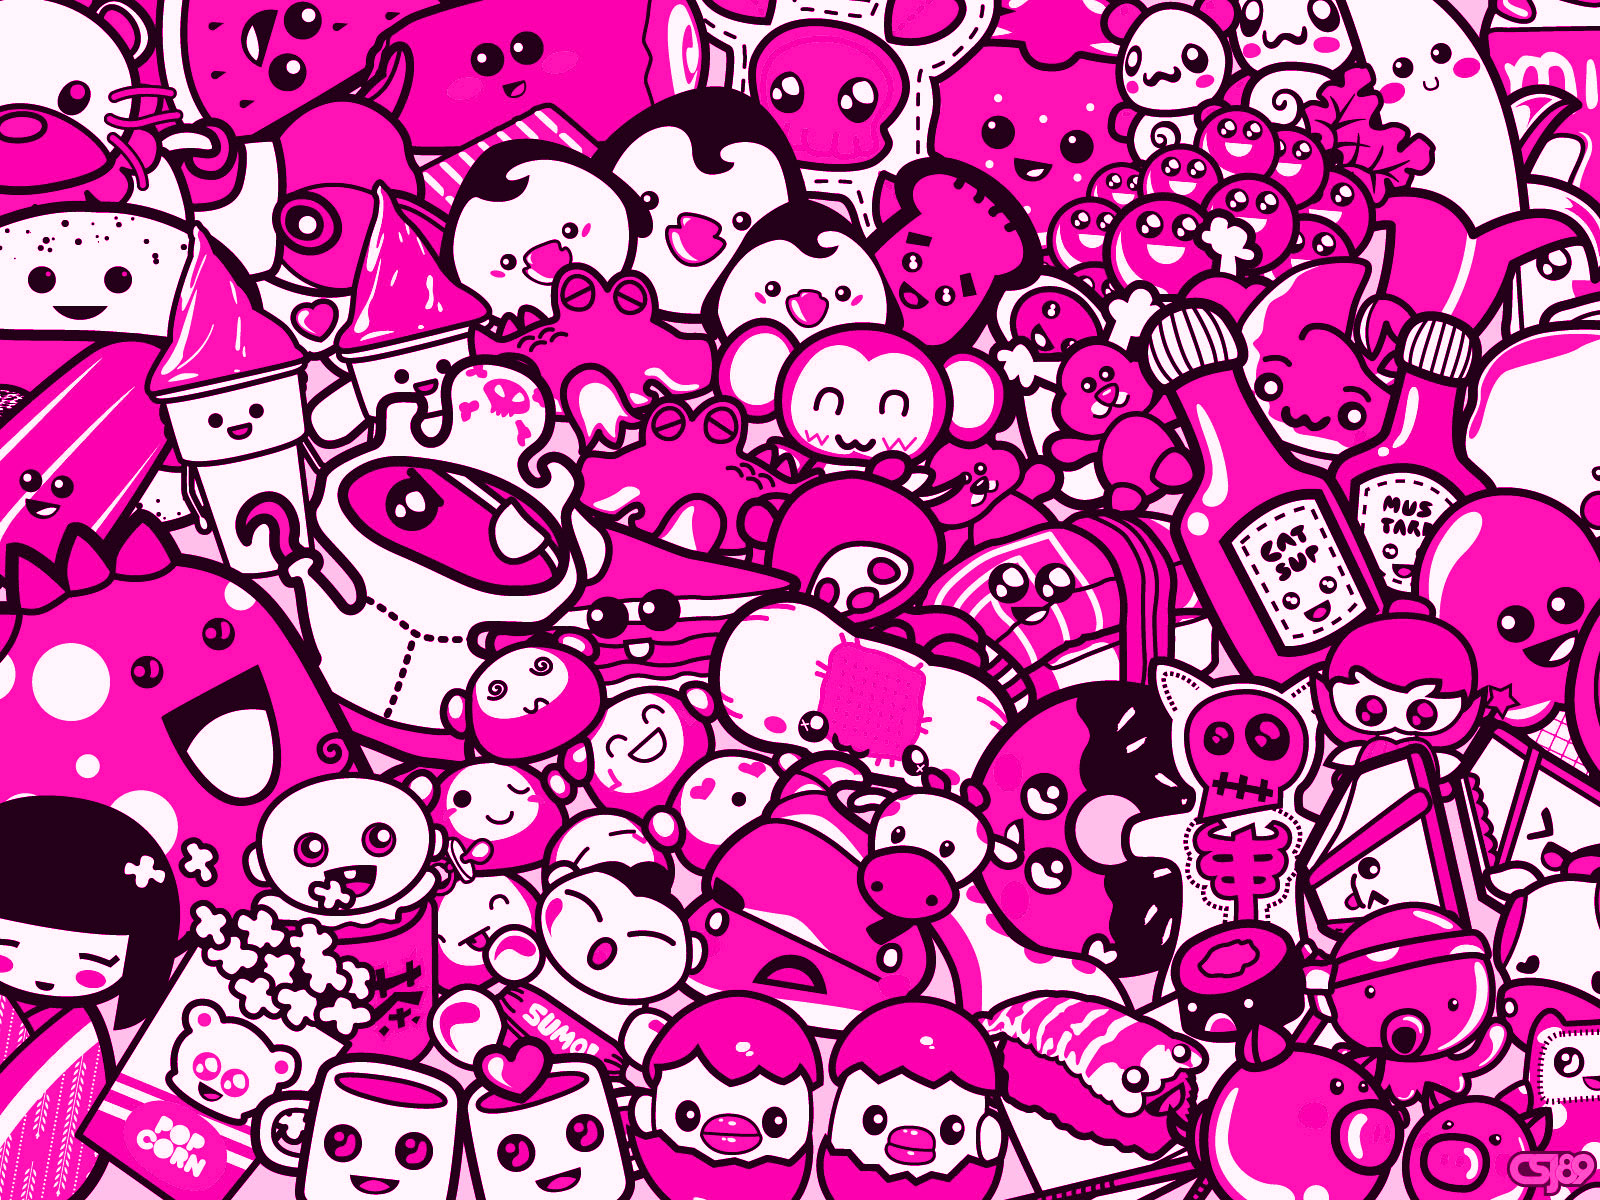 Pink Wallpapers Cute FREE WALLPAPERS 1600x1200